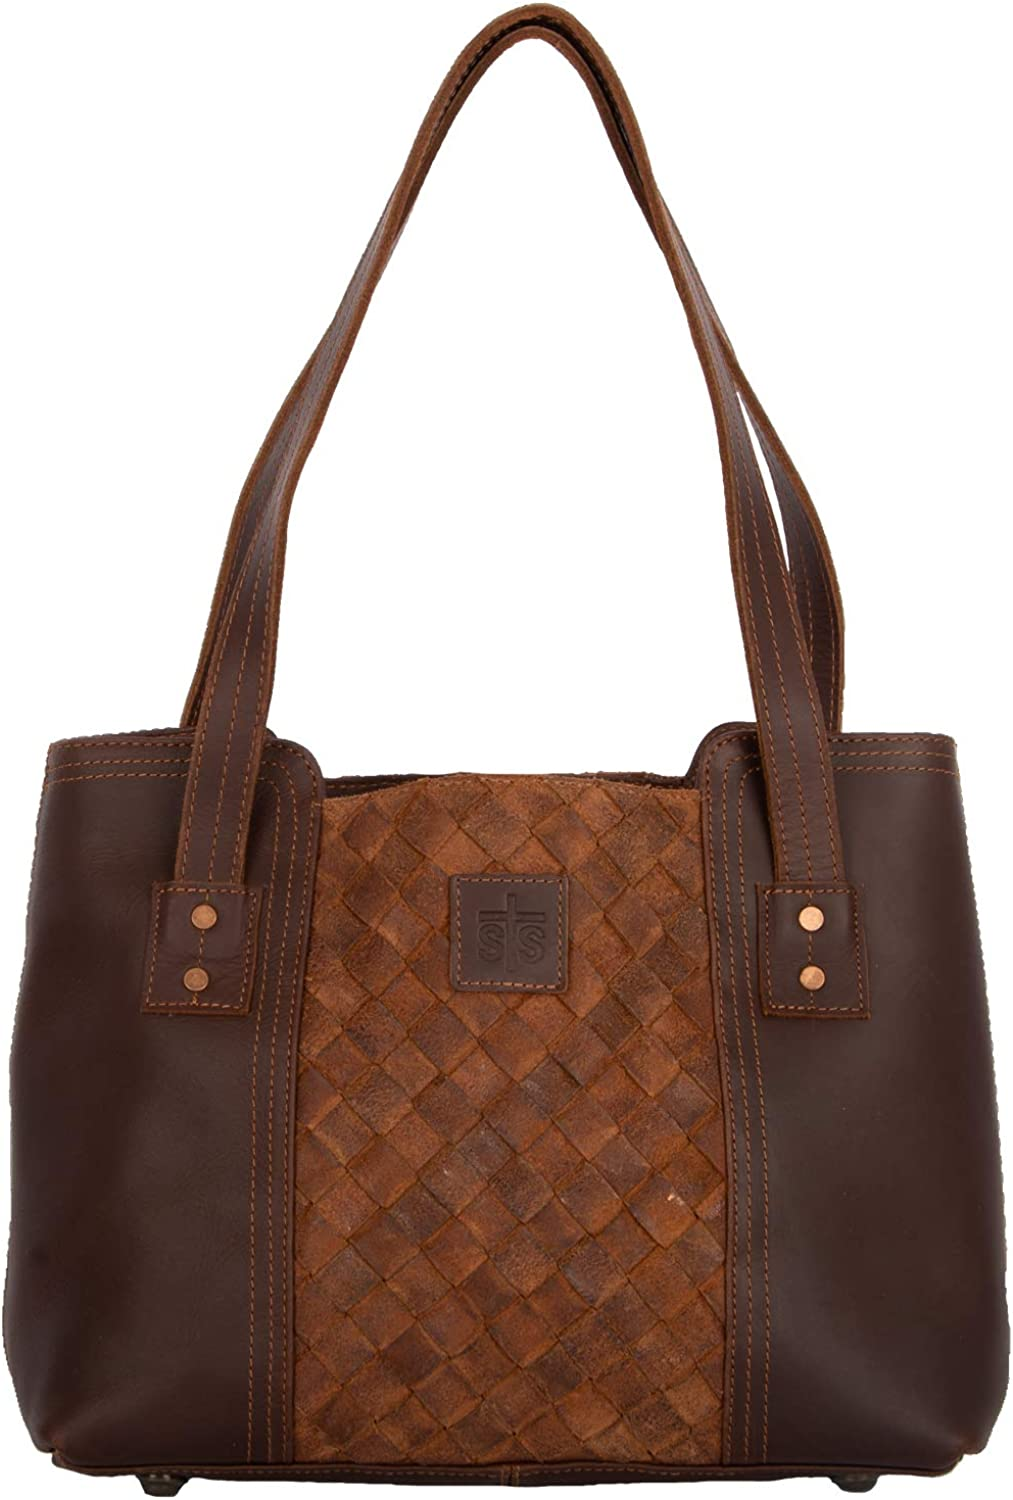 STS Ranchwear Genuine Free Shipping Basket Weave Small Size Tote One Brown Boston Mall